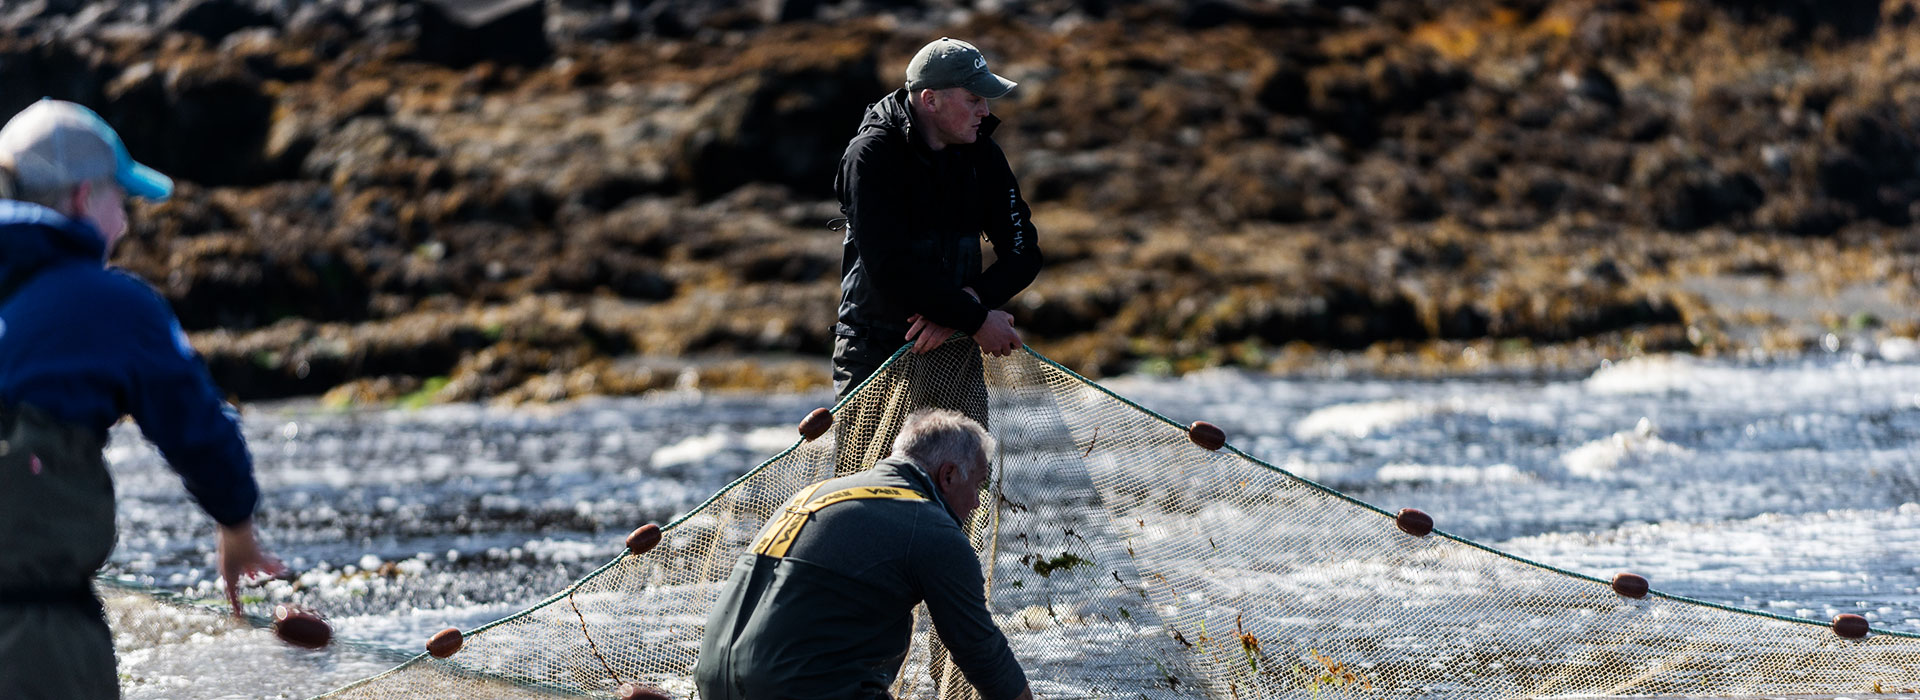 netting Brown Trout, Isle of Skye and Lochalsh rivers